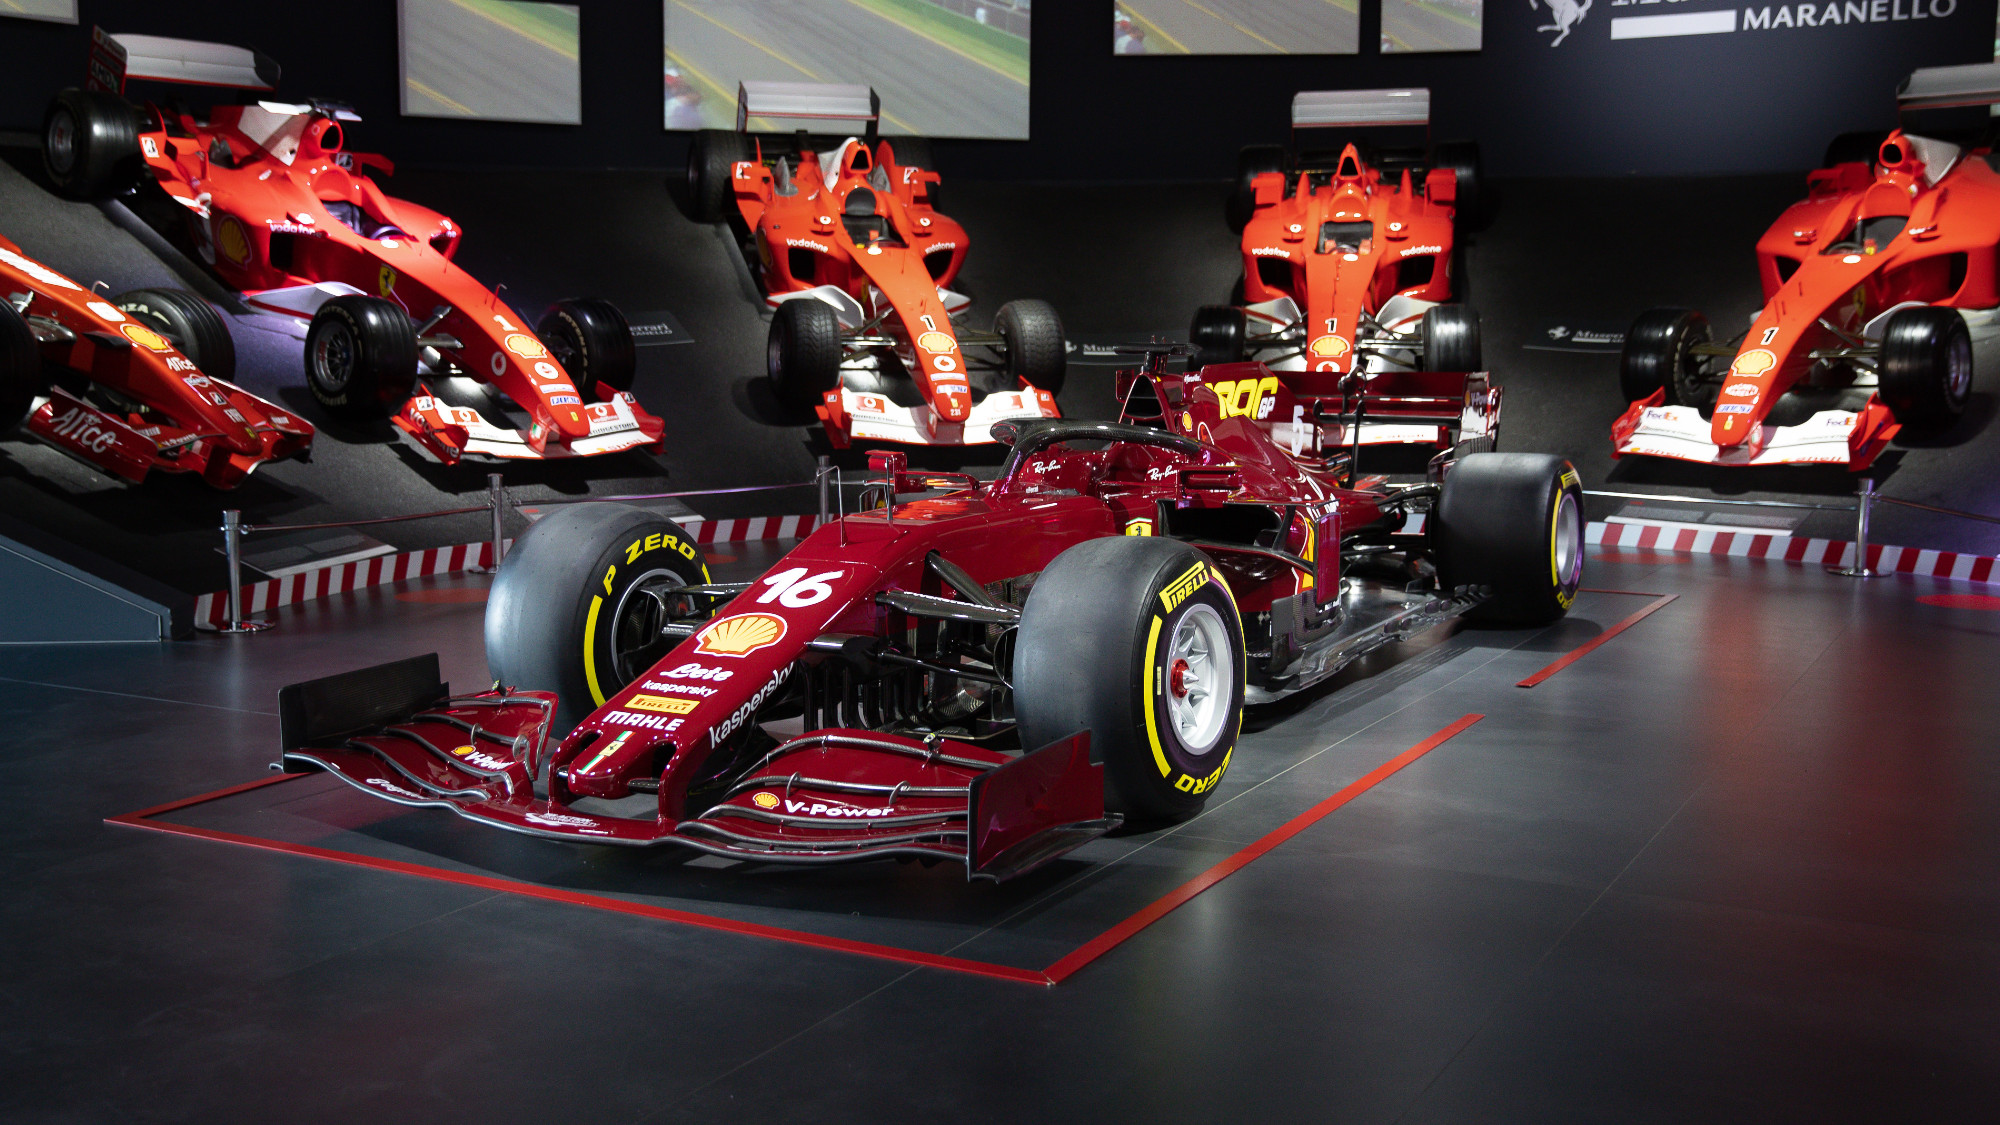 Replica 2020 Ferrari F1 car sells for £1.15m. Engine not included